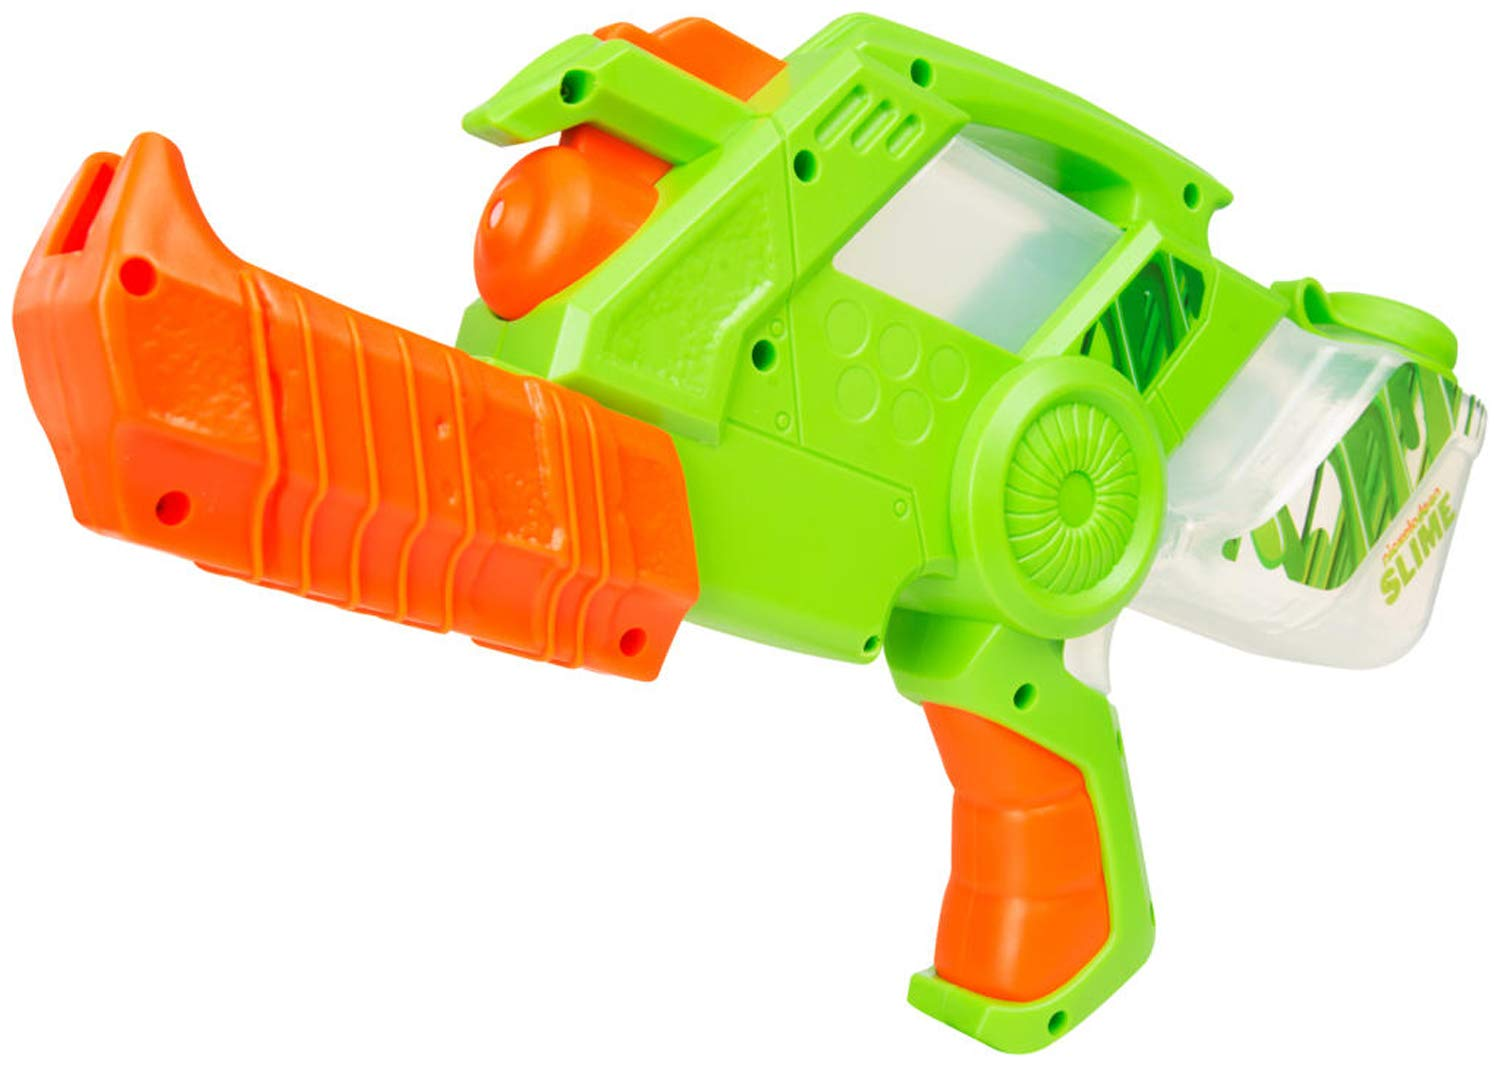 Nickelodeon Slime Hyper Blaster Shooter by Nickelodeon (Image #7)